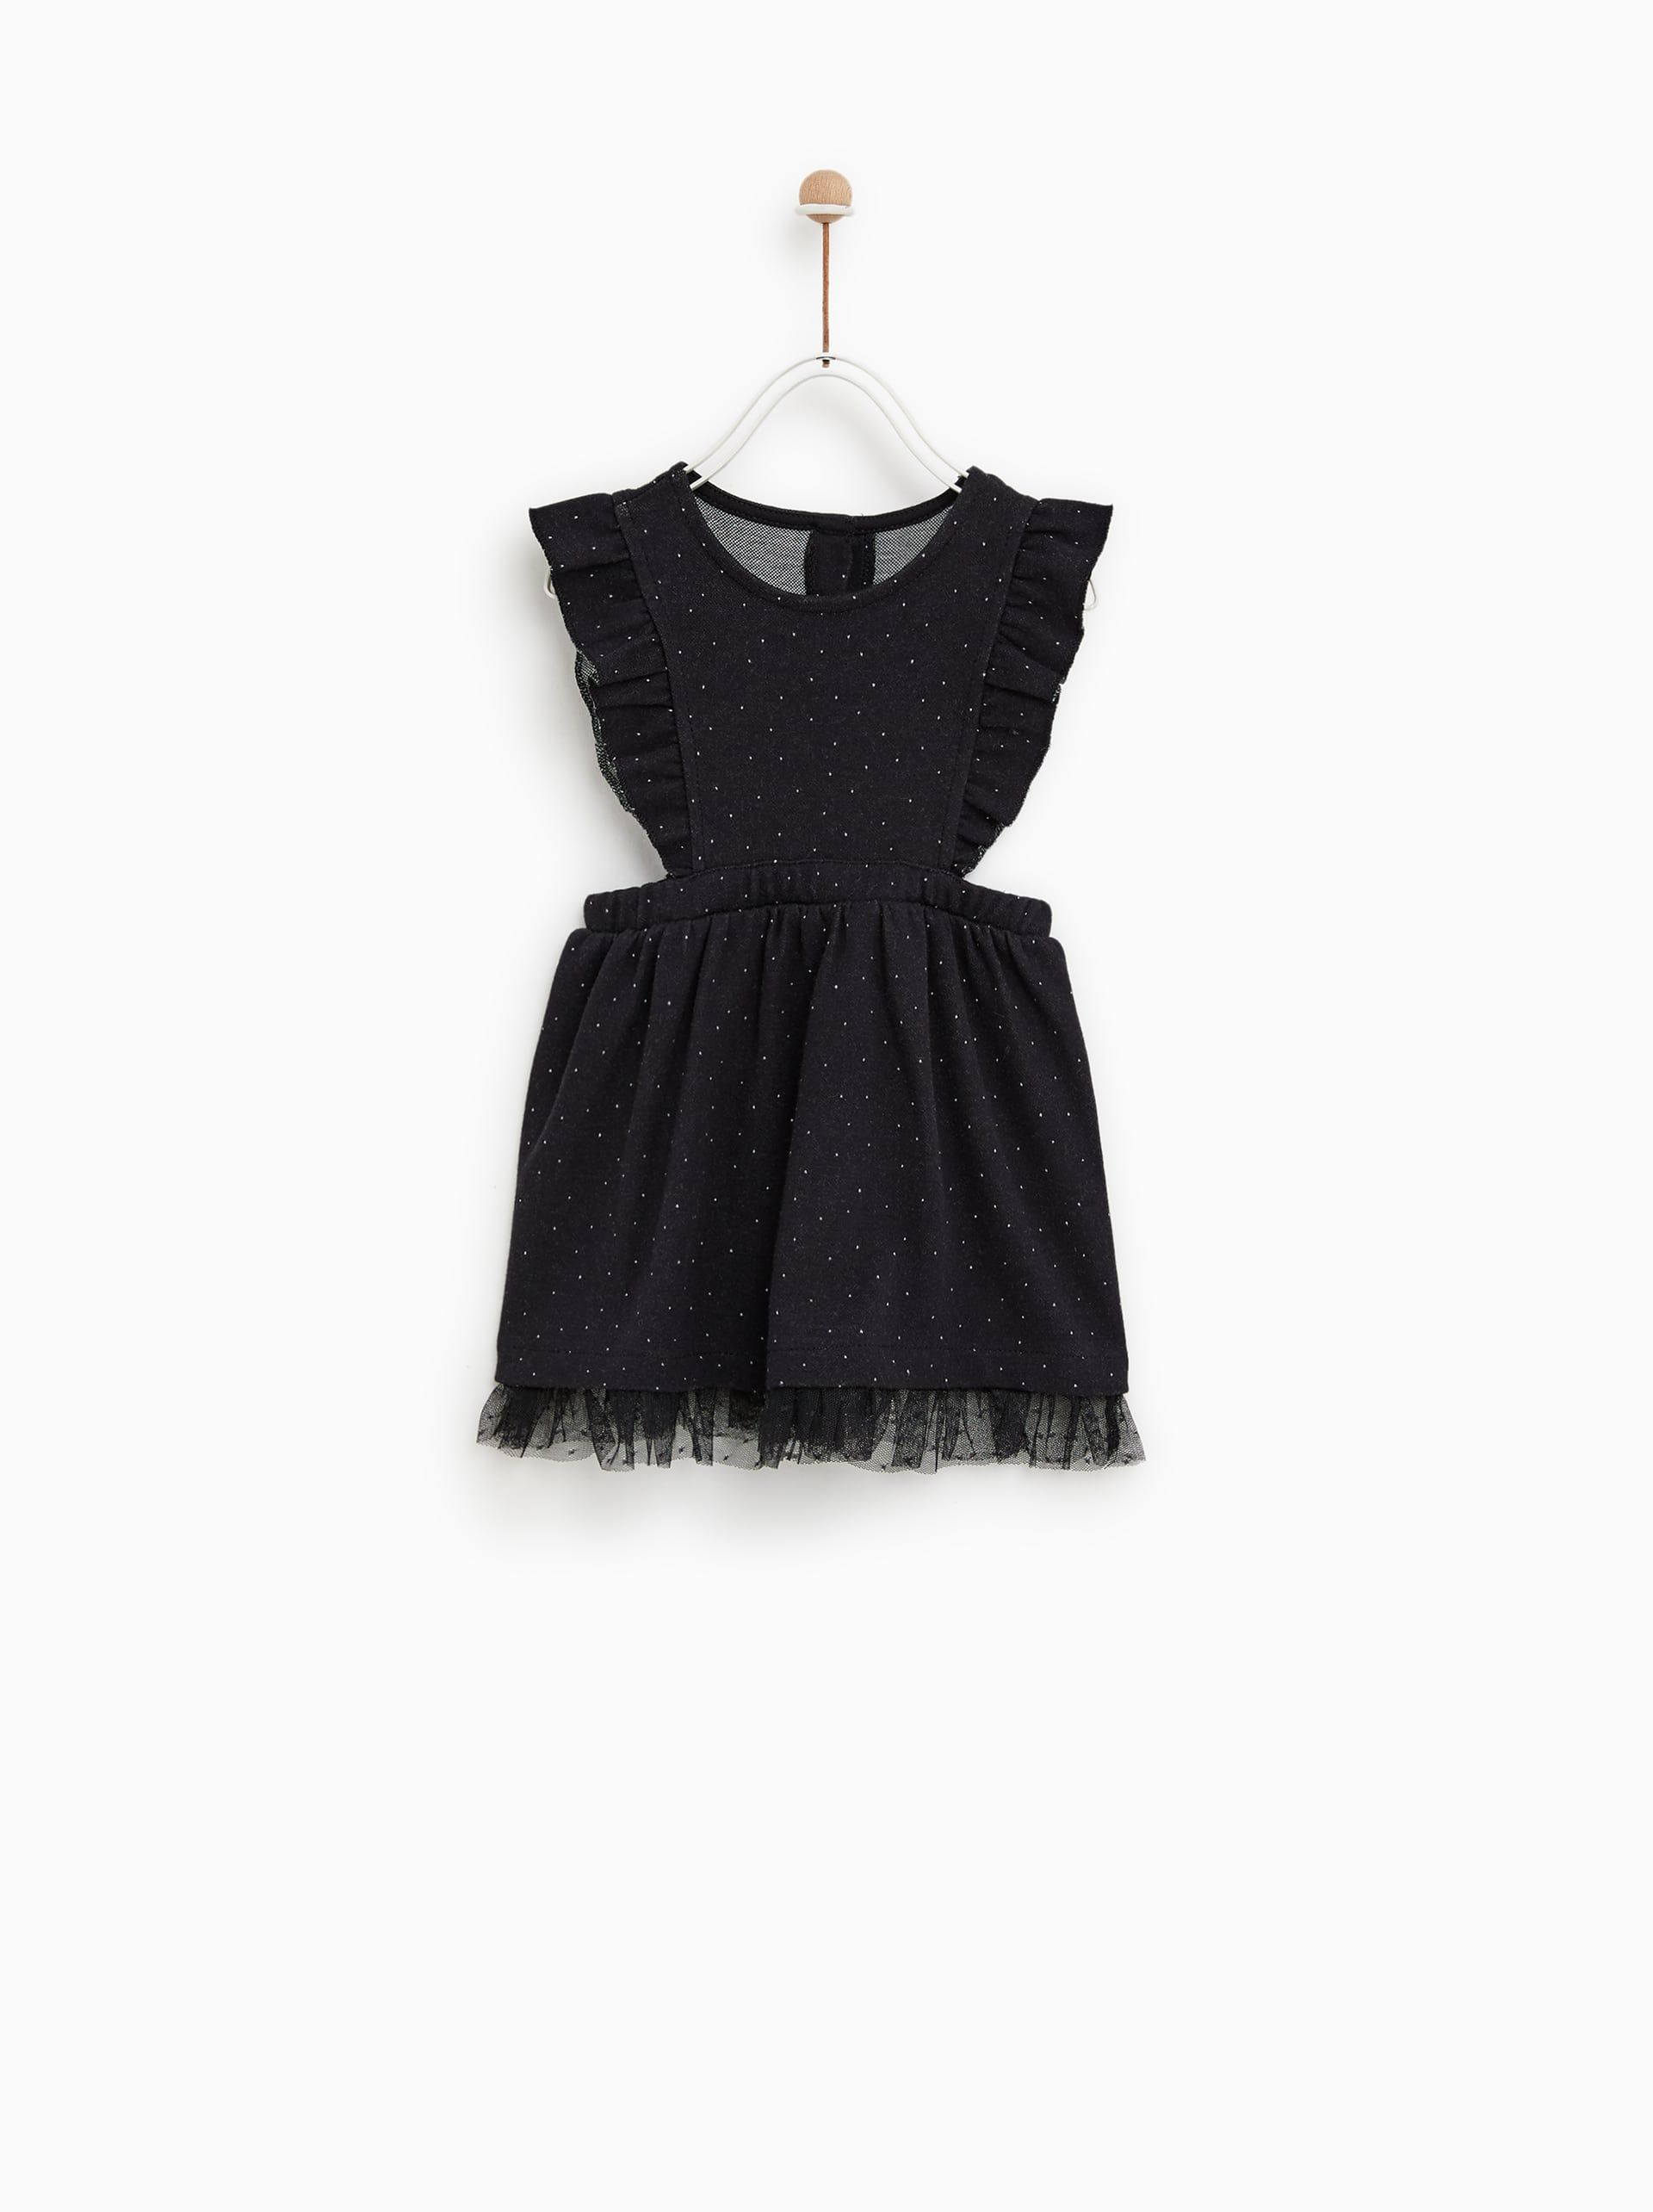 928fce1f7b3c Image 1 of DOTTED MESH TULLE DRESS from Zara  kidshalloweenfashion   kidshalloweenparty  childrenshalloweenfashion  childrenshalloween  zara